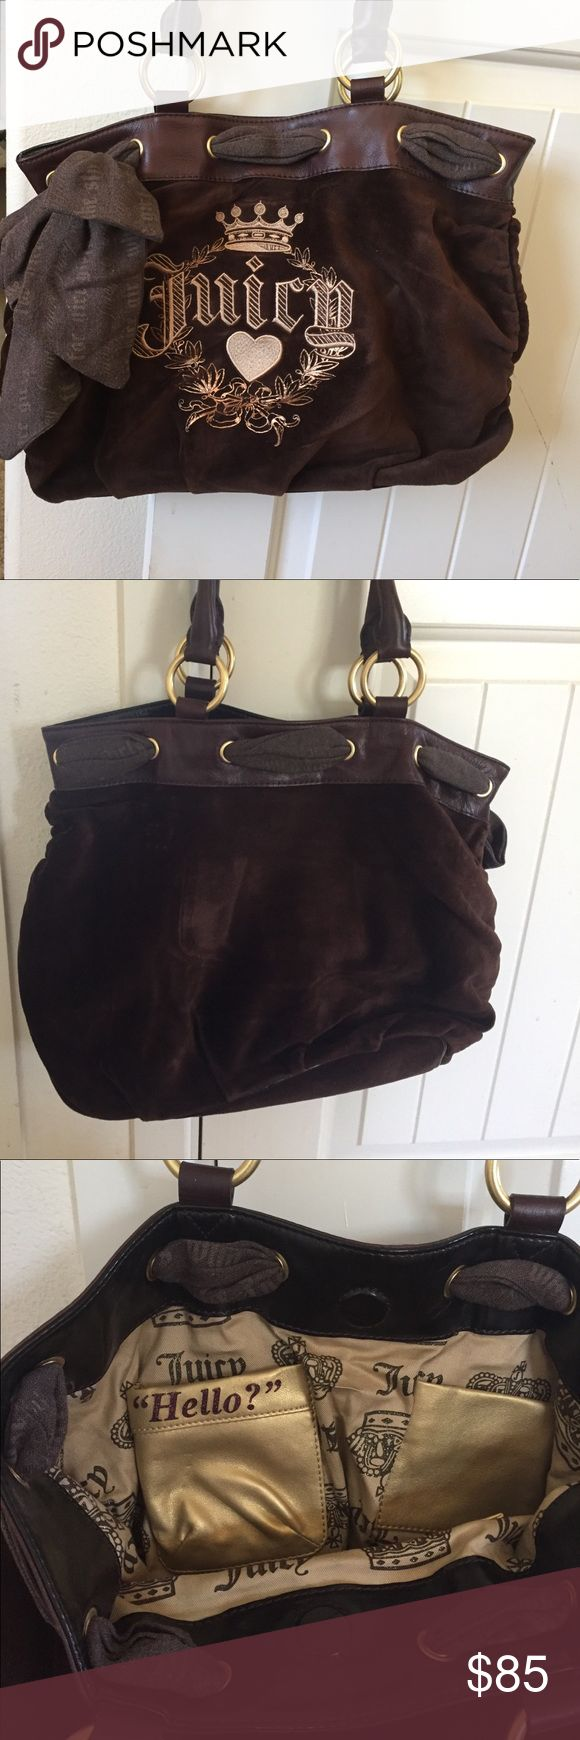 Juicy couture purse! Beautiful Juicy bag! Only used it once! Perfect condition. Juicy Couture Bags Shoulder Bags